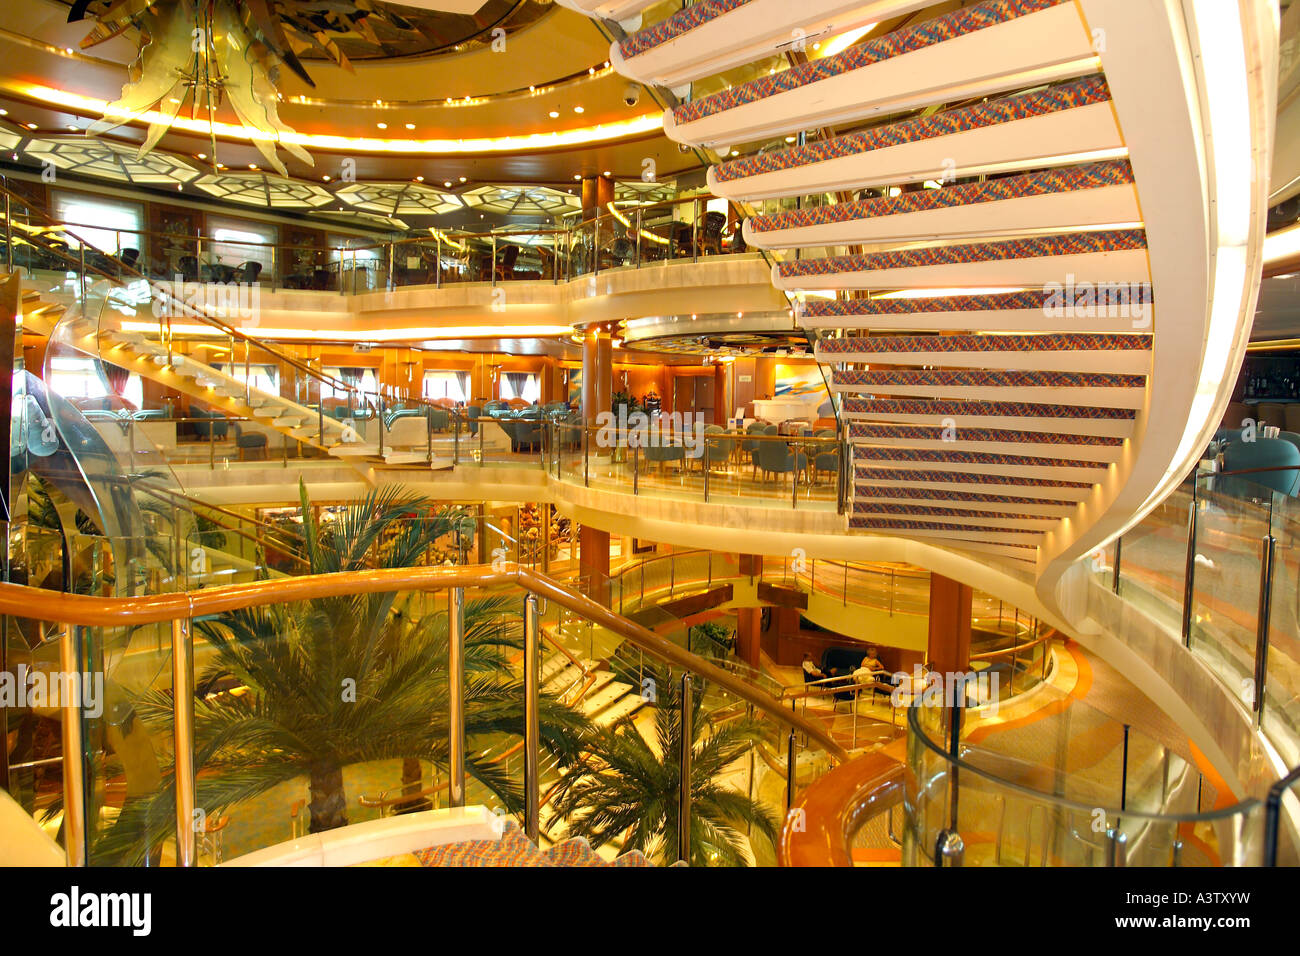 The PO Cruise Ship Adonia Southhampton Stock Photo Royalty Free - Adonia cruise ship